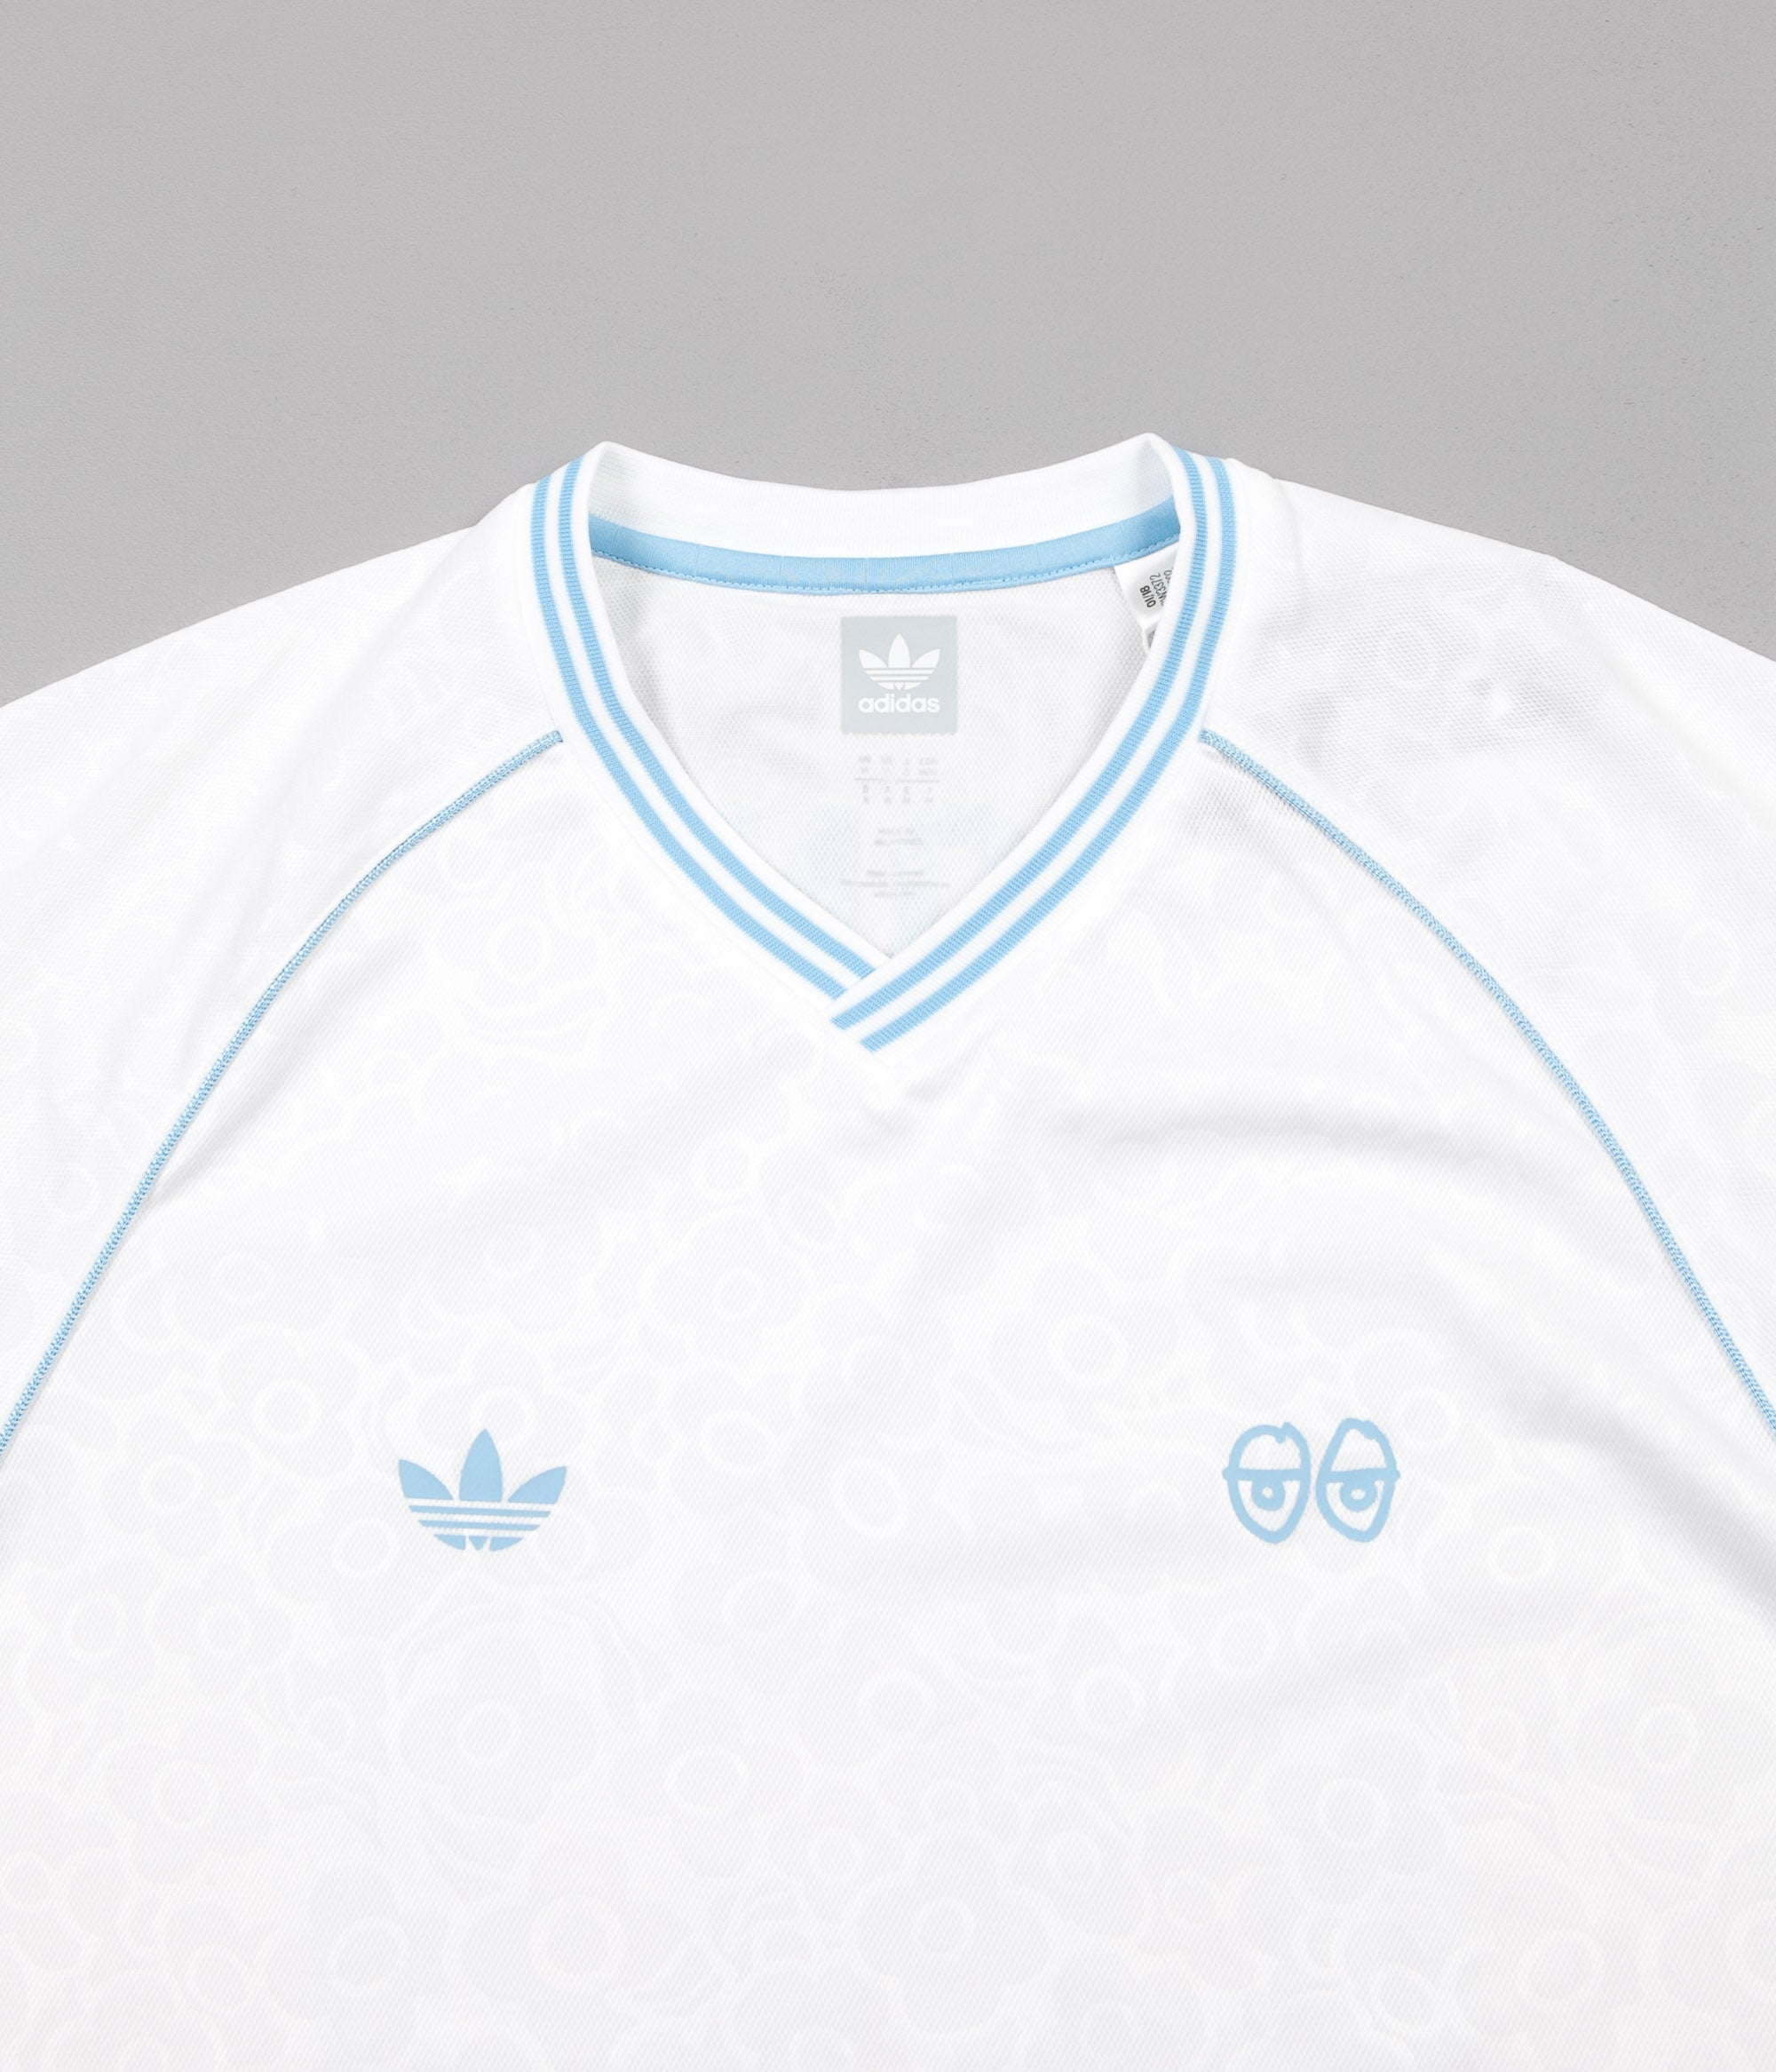 Adidas x Krooked Jersey - White / Clear Blue